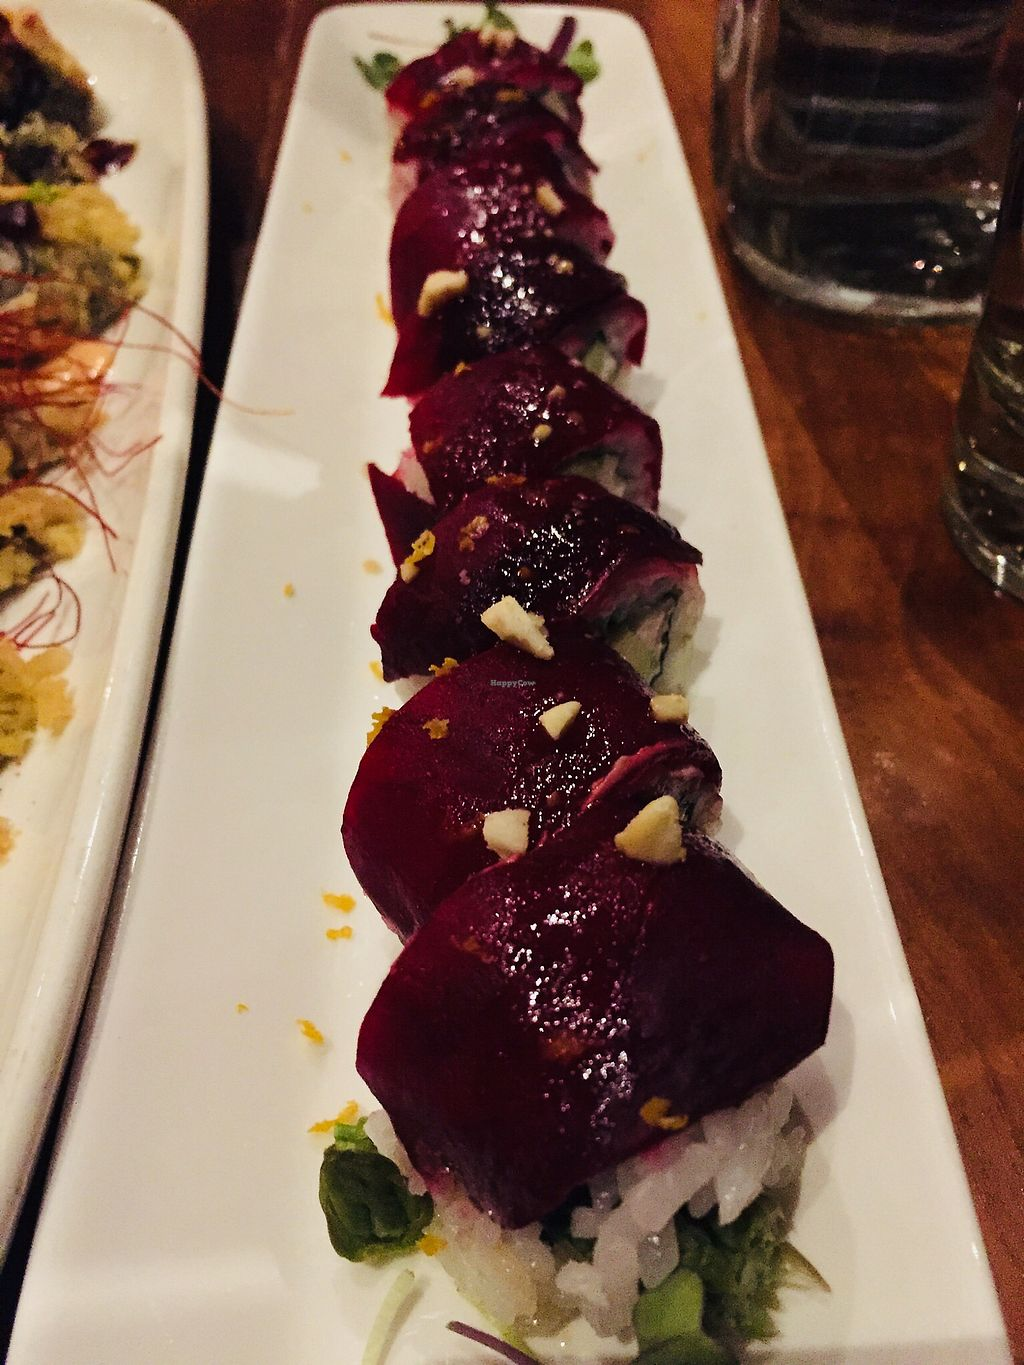 """Photo of Shizen Vegan Sushi Bar  by <a href=""""/members/profile/TheVeganNarwhal"""">TheVeganNarwhal</a> <br/>Colonel's Pipe <br/> February 12, 2018  - <a href='/contact/abuse/image/54689/358225'>Report</a>"""